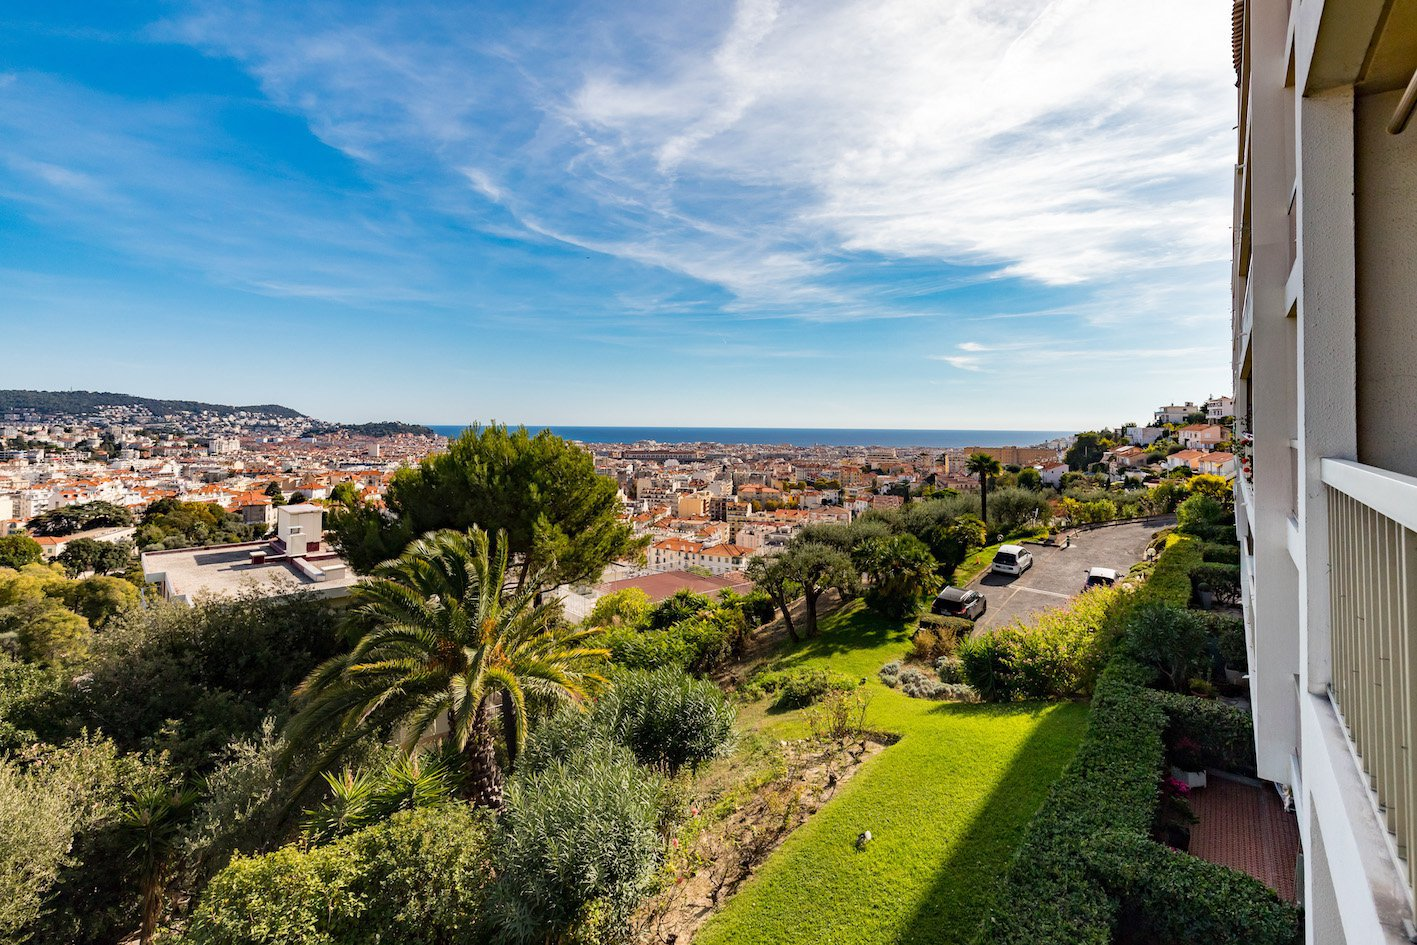 Nice Pessicart / Parc MONTEBELLO - 3 BedRooms - Panoramic Sea and City